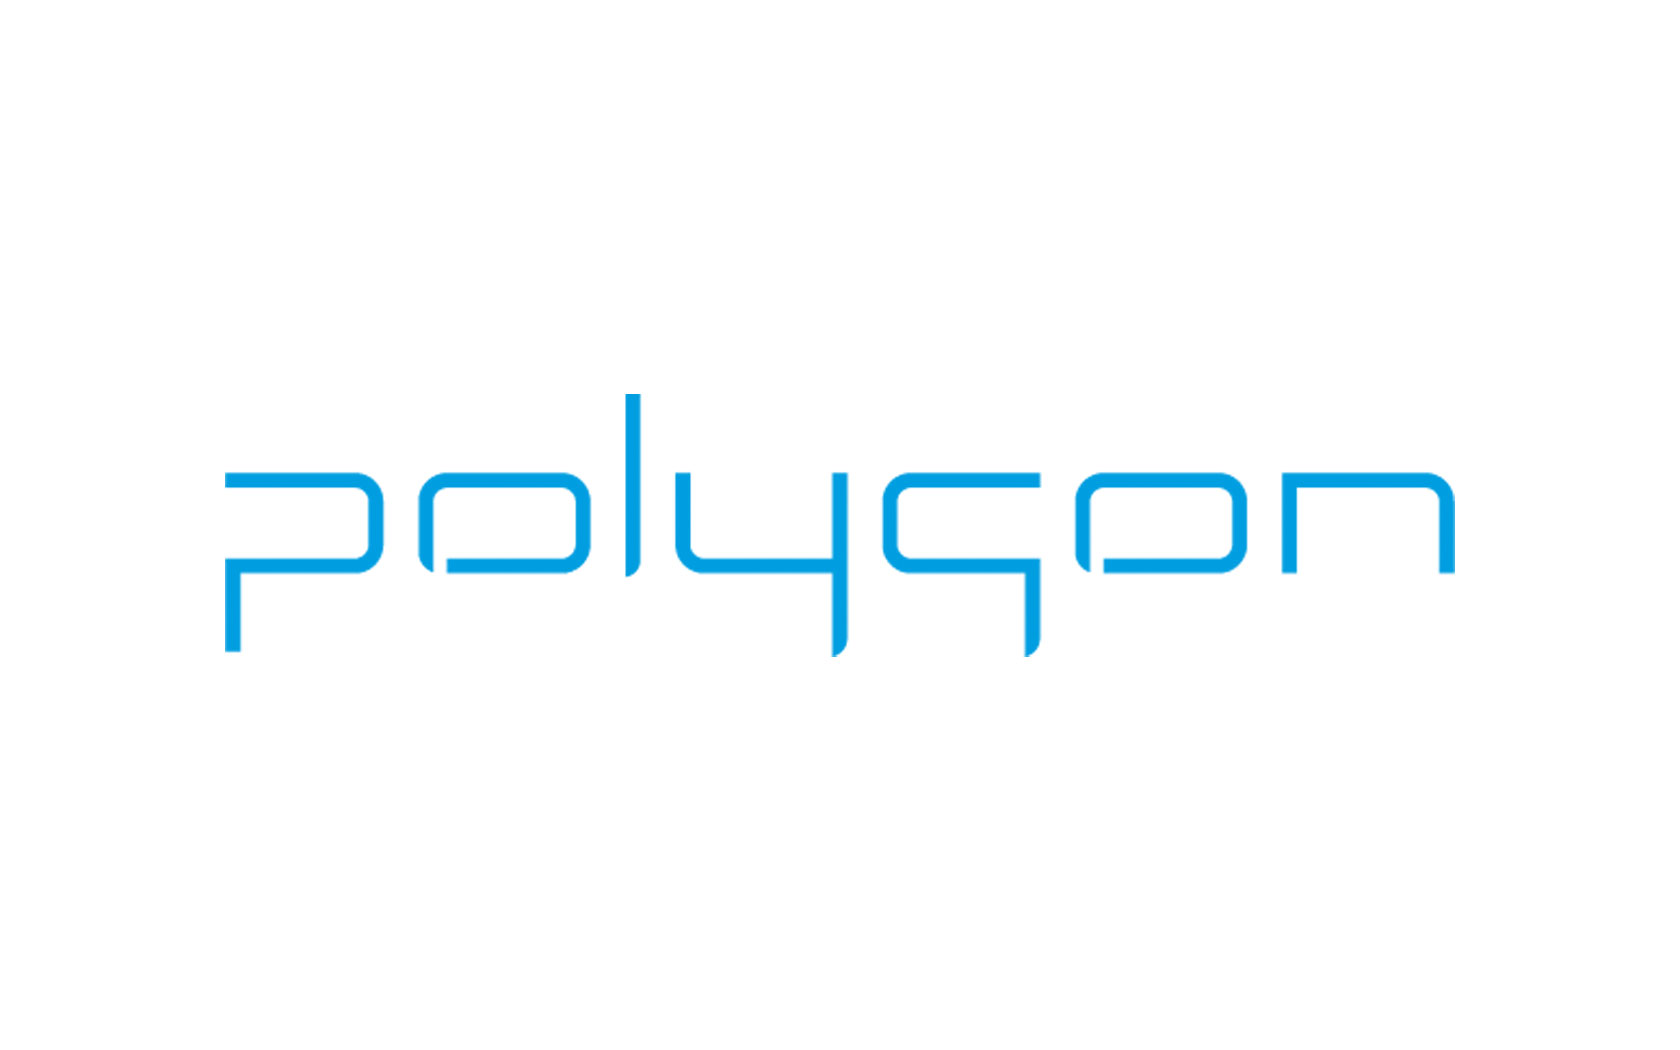 Polygon Gmbh polygon produktdesign konstruktion herstellung gmbh polygon